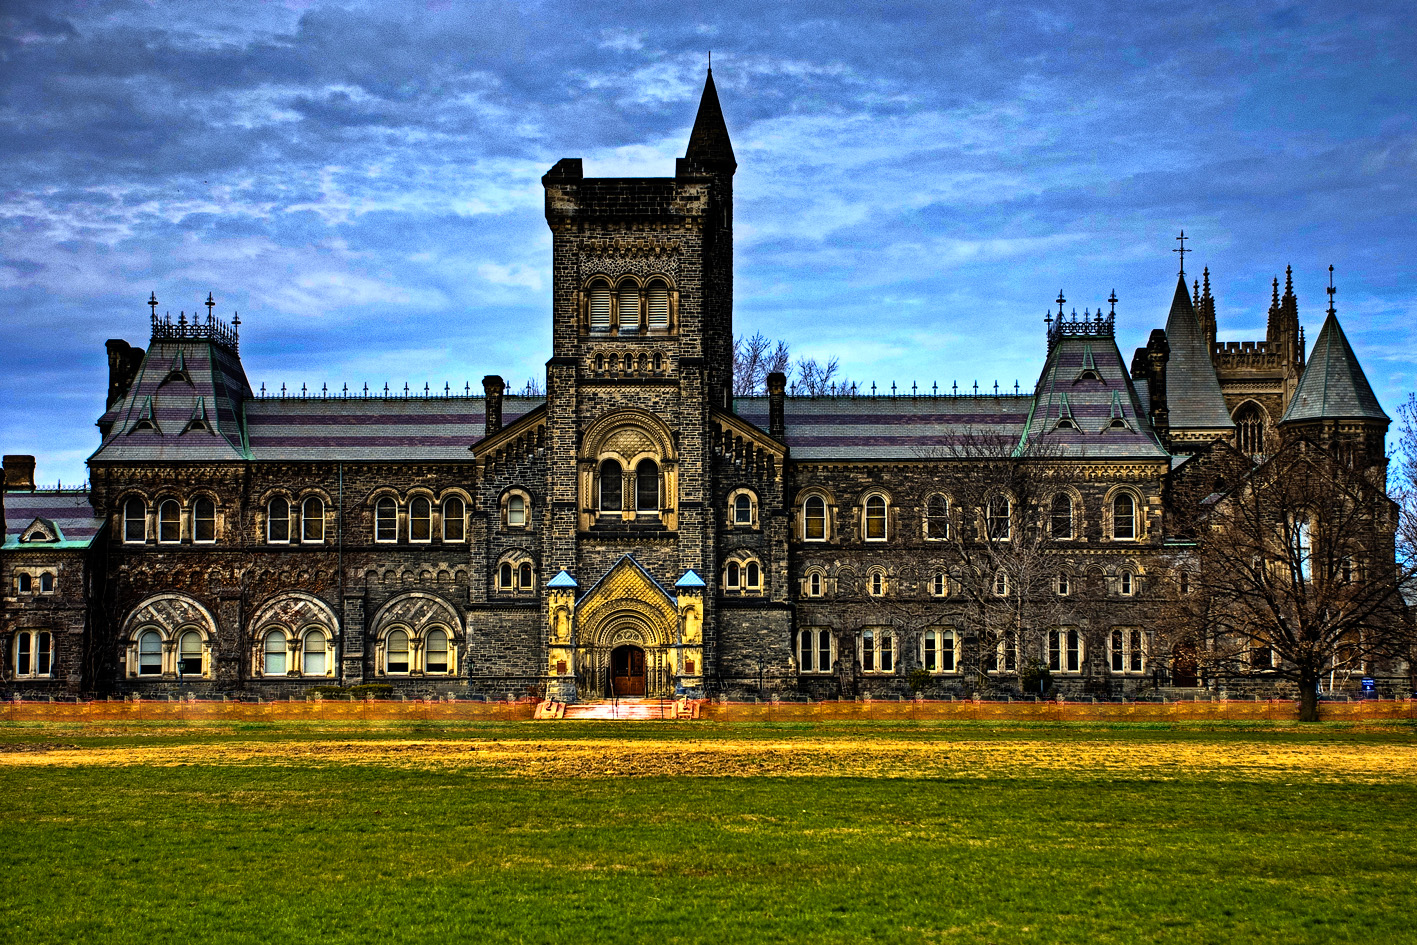 High contrast image of University College building at the University of Toronto at dusk